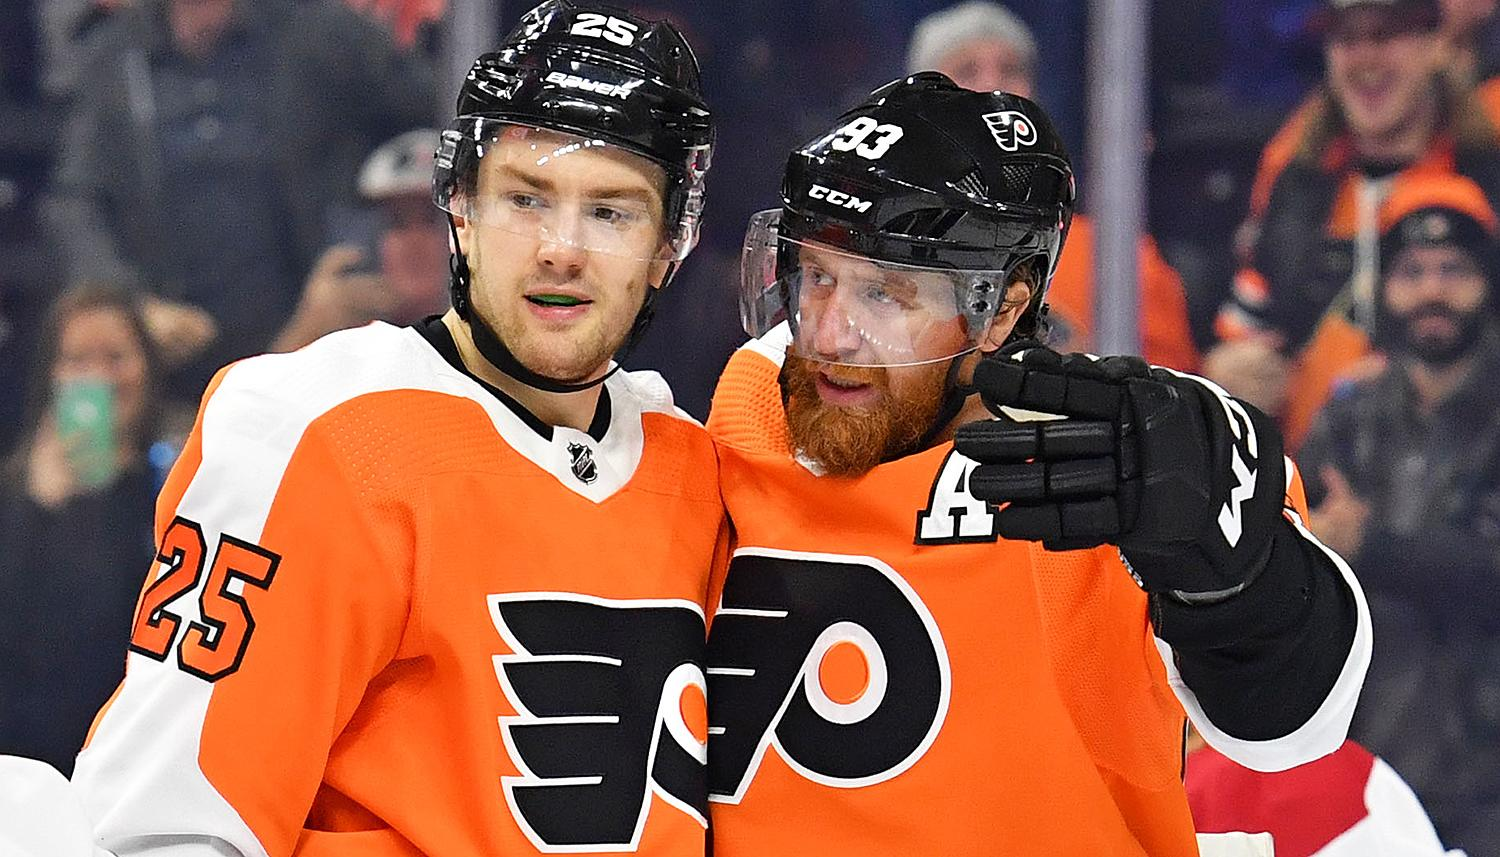 2021 NHL expansion draft: Flyers' protected list, available players for Seattle Kraken draft